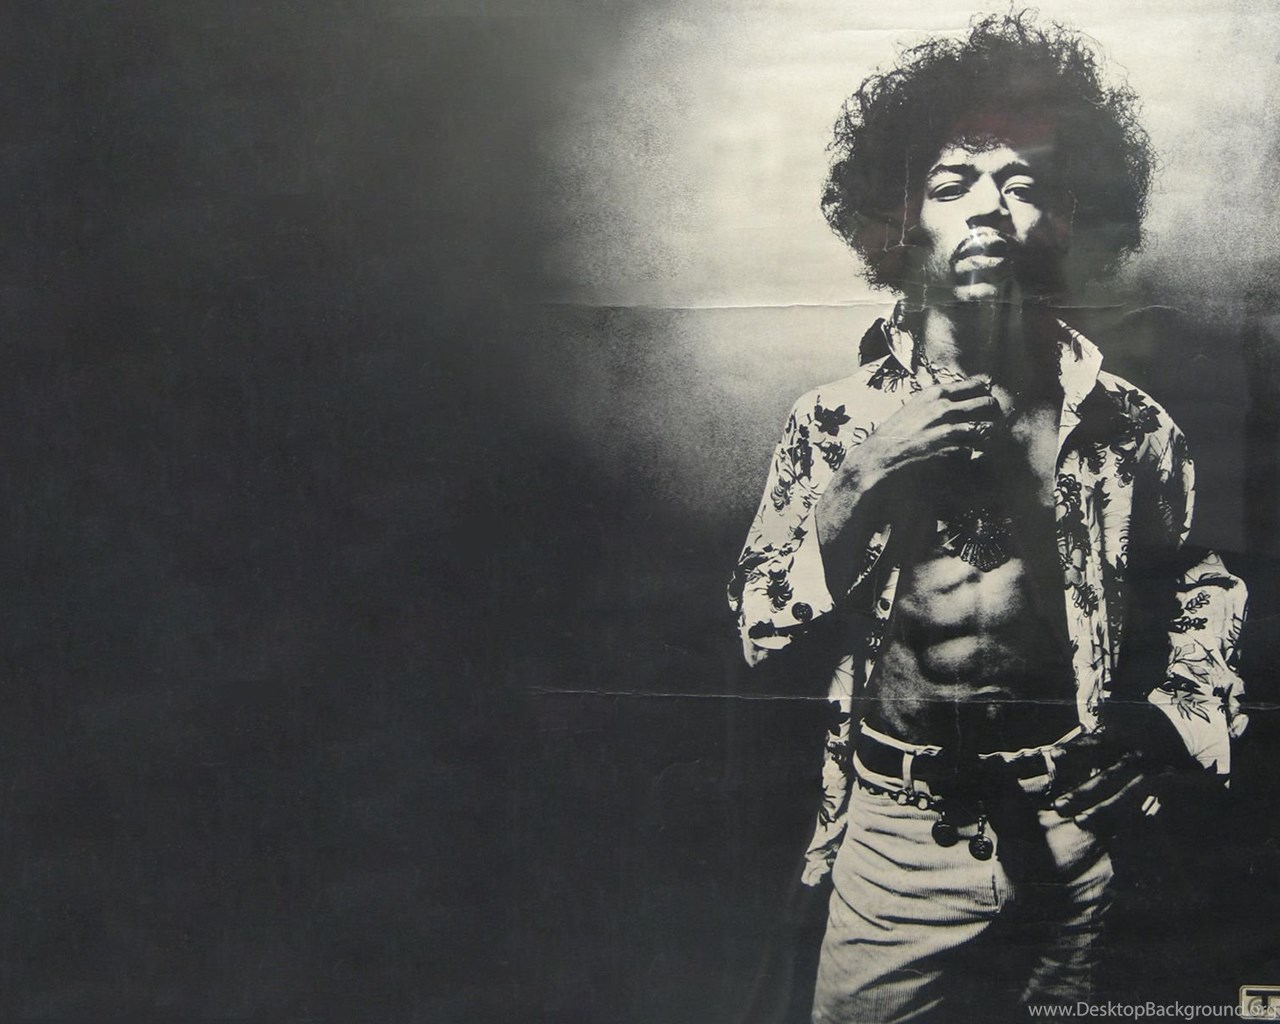 Jimi hendrix wallpapers high resolution and quality download desktop widescreen thecheapjerseys Gallery